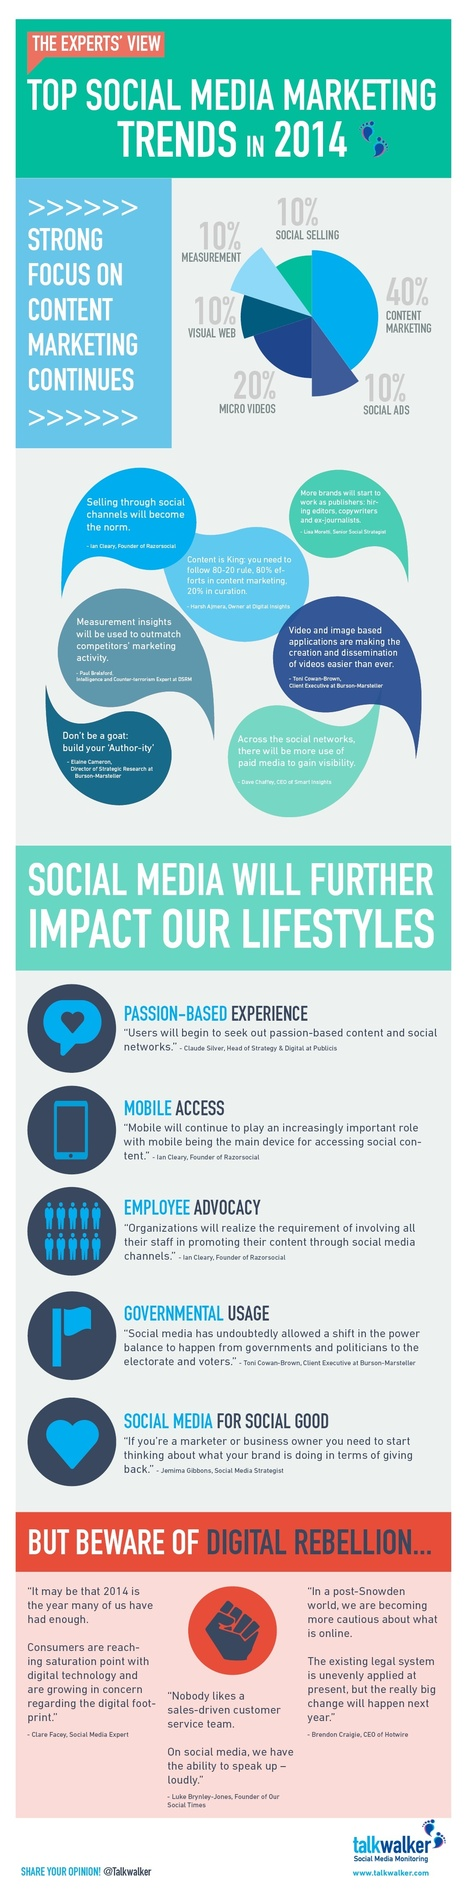 Top Social Media Marketing Trends For 2014 #INFOGRAPHIC | MarketingHits | Scoop.it